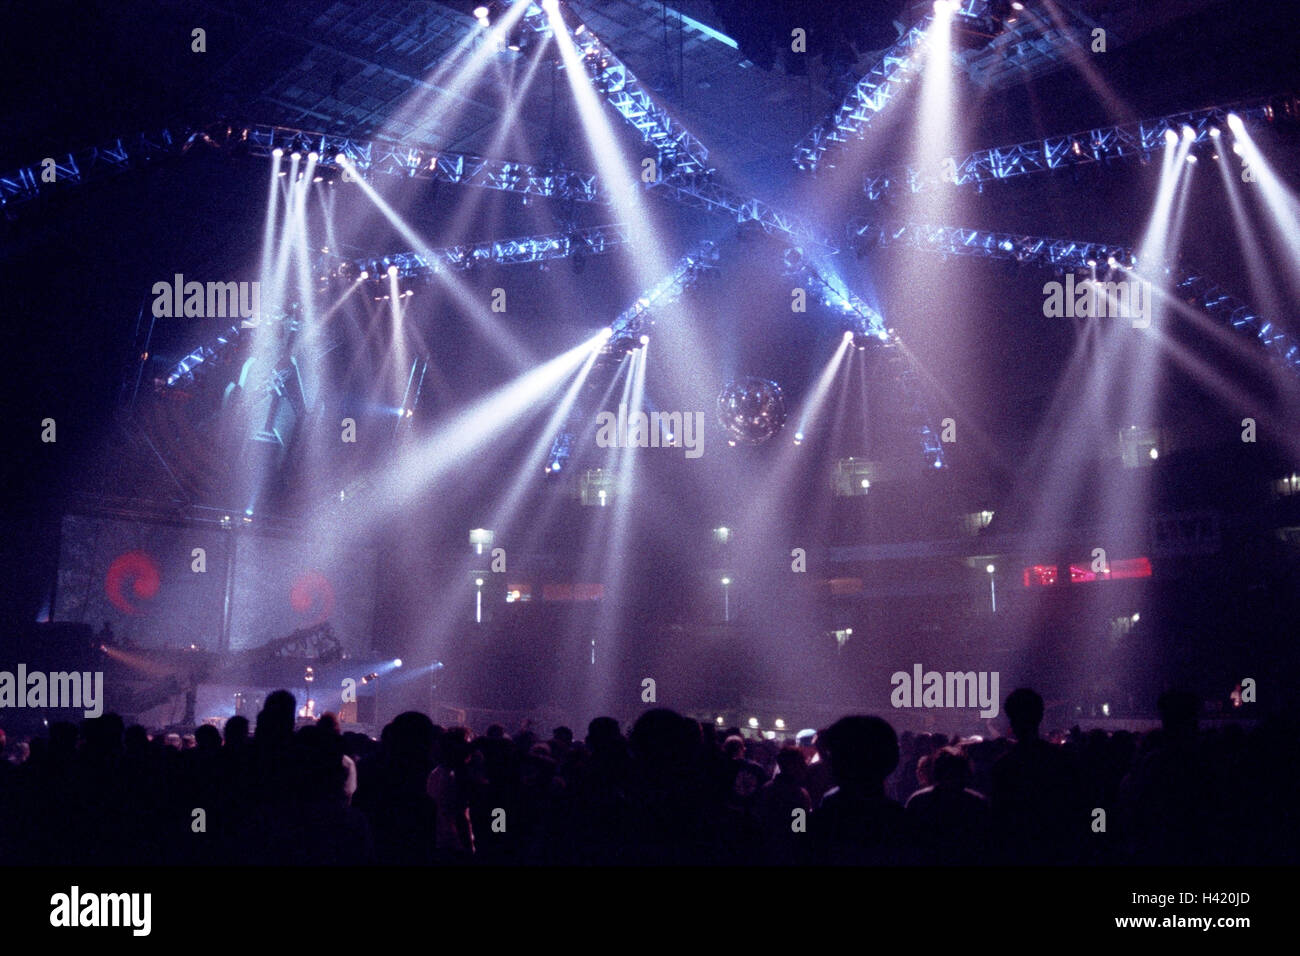 Disco, light show, crowd people, silhouette, disco, nightclub, night club, dance floor, dance floor, dance, go out, - Stock Image